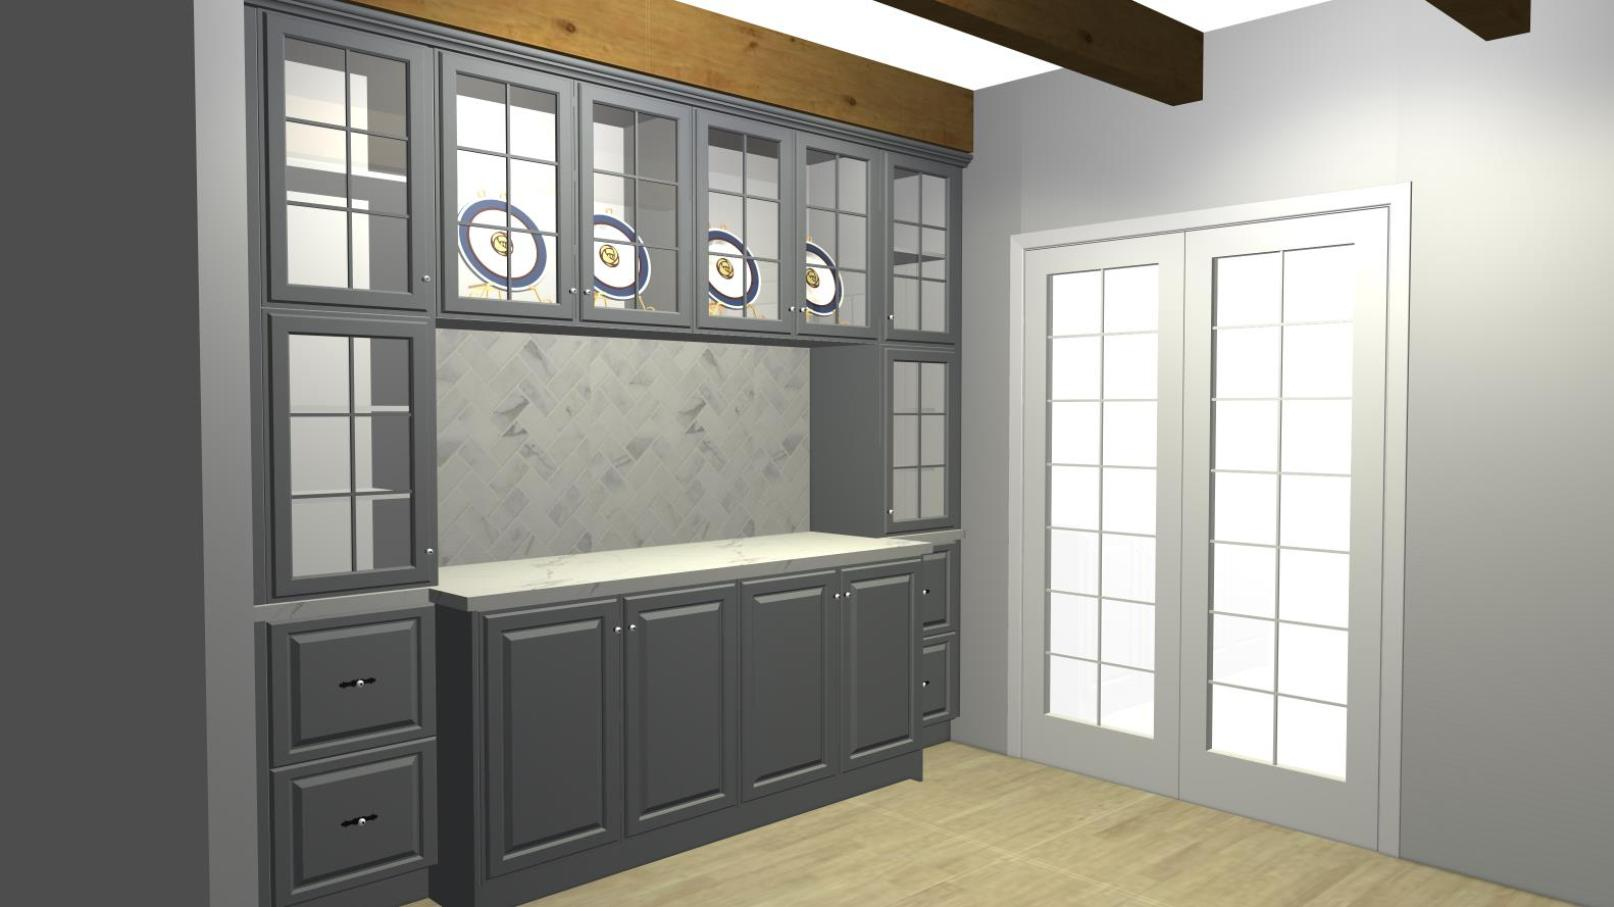 Customizing Your Home With Ikea Cabinets, Dining Room Hutch Ikea